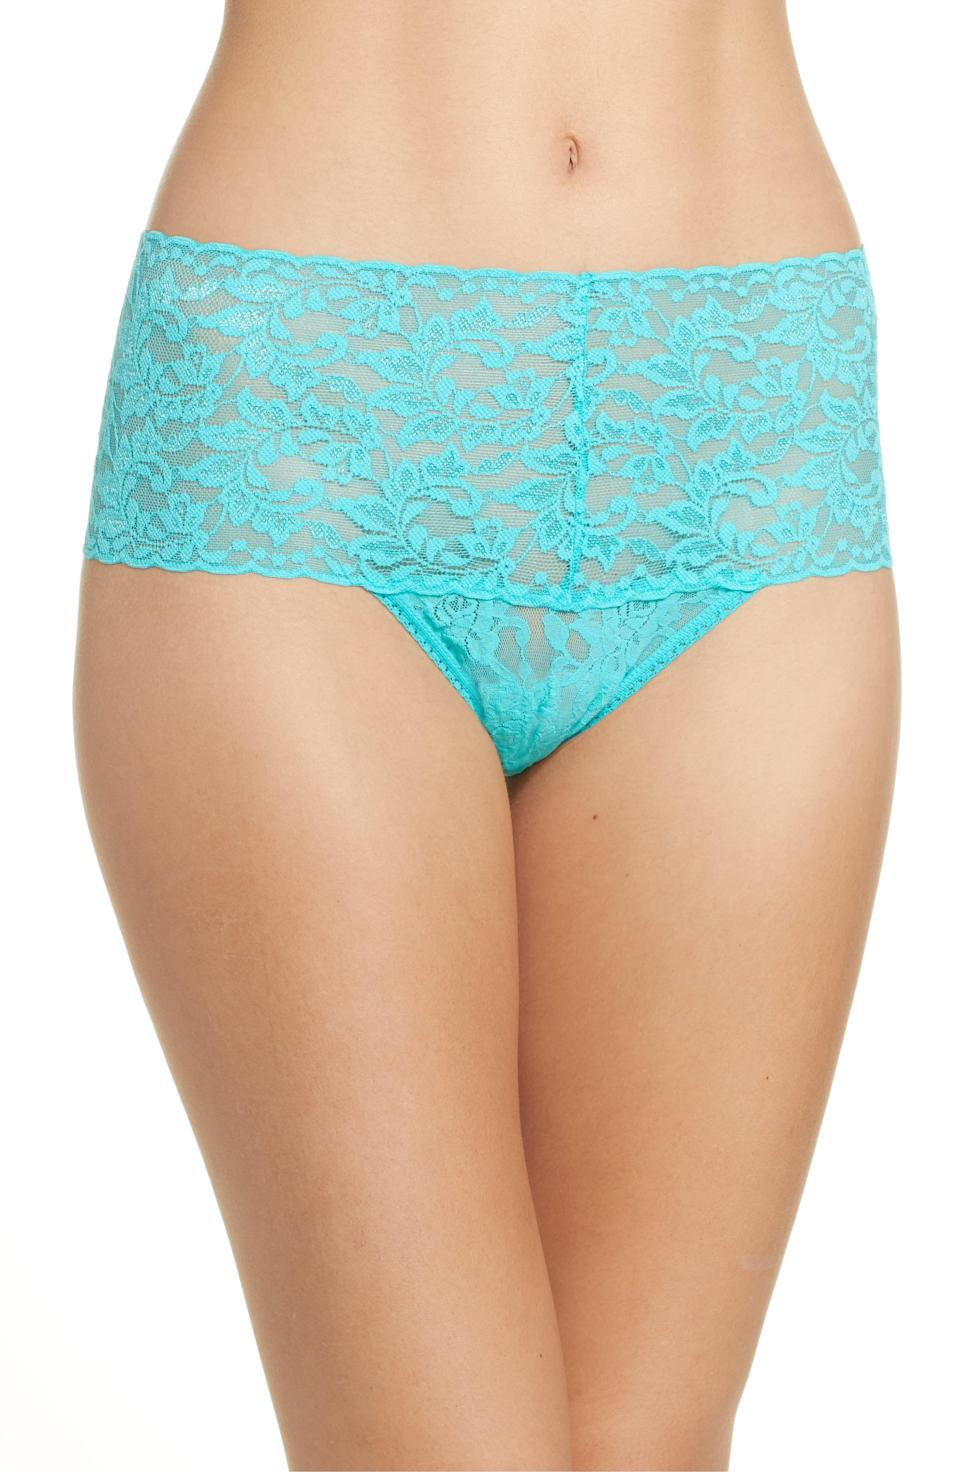 """<p><strong>Hanky Panky</strong></p><p>nordstrom.com</p><p><a href=""""https://go.redirectingat.com?id=74968X1596630&url=https%3A%2F%2Fshop.nordstrom.com%2Fs%2Fhanky-panky-retro-high-waist-thong-any-4-for-59%2F3312559&sref=https%3A%2F%2Fwww.cosmopolitan.com%2Fstyle-beauty%2Ffashion%2Fg33597174%2Fnordstrom-anniversary-sale-2020%2F"""" rel=""""nofollow noopener"""" target=""""_blank"""" data-ylk=""""slk:Shop Now"""" class=""""link rapid-noclick-resp"""">Shop Now</a></p><p>Add something cute and frilly to your underwear drawer without spending too much $$. </p><p><strong><del>$23<br></del>$16.90</strong><br></p>"""